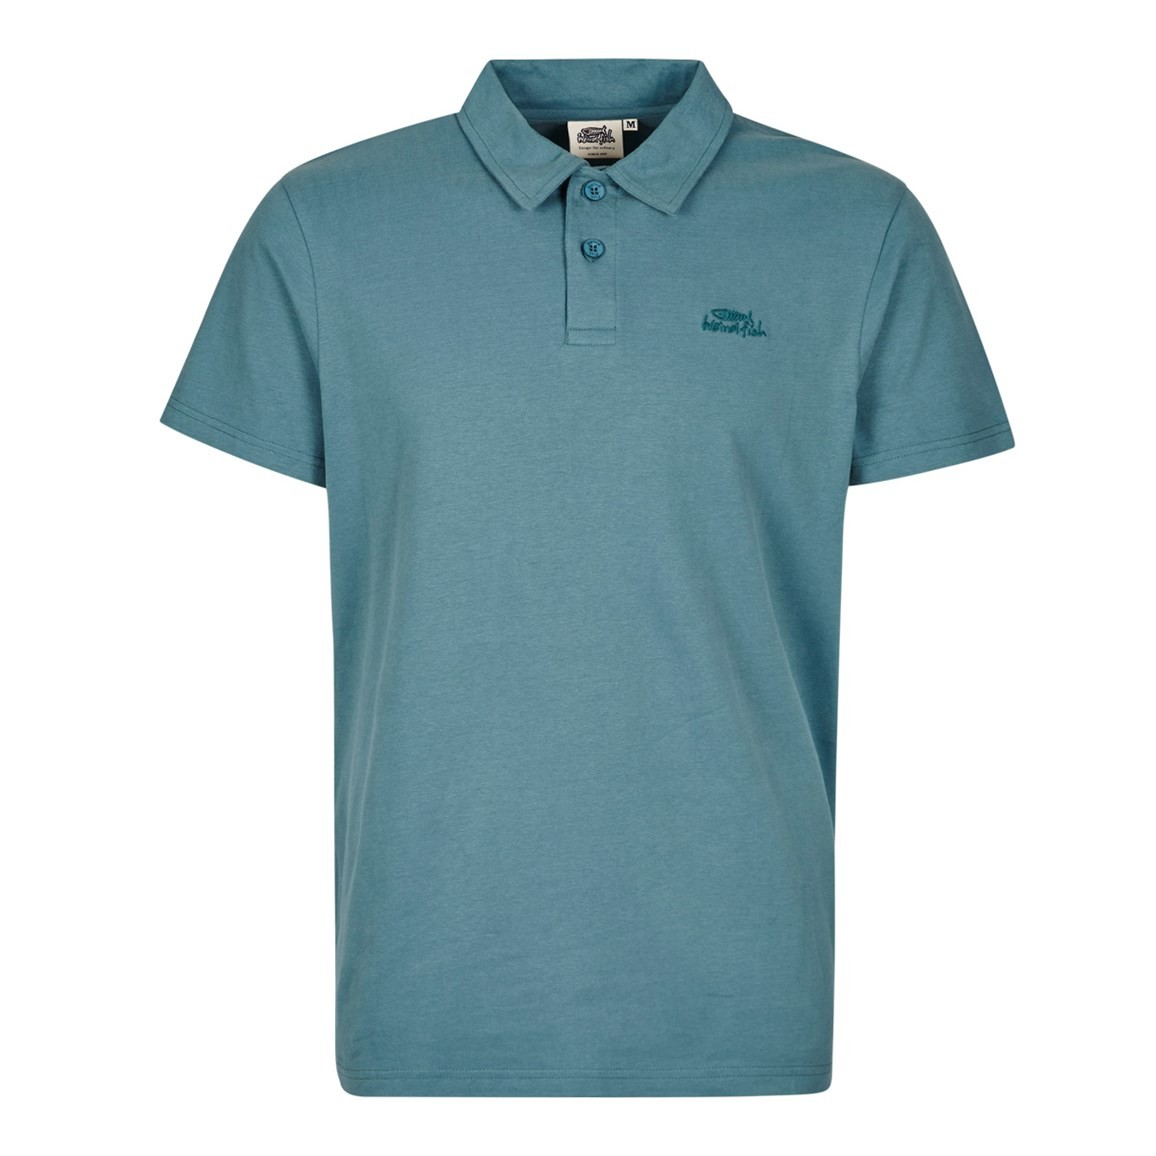 Image of Weird Fish Andre Classic Polo Shirt Sea Green Size L